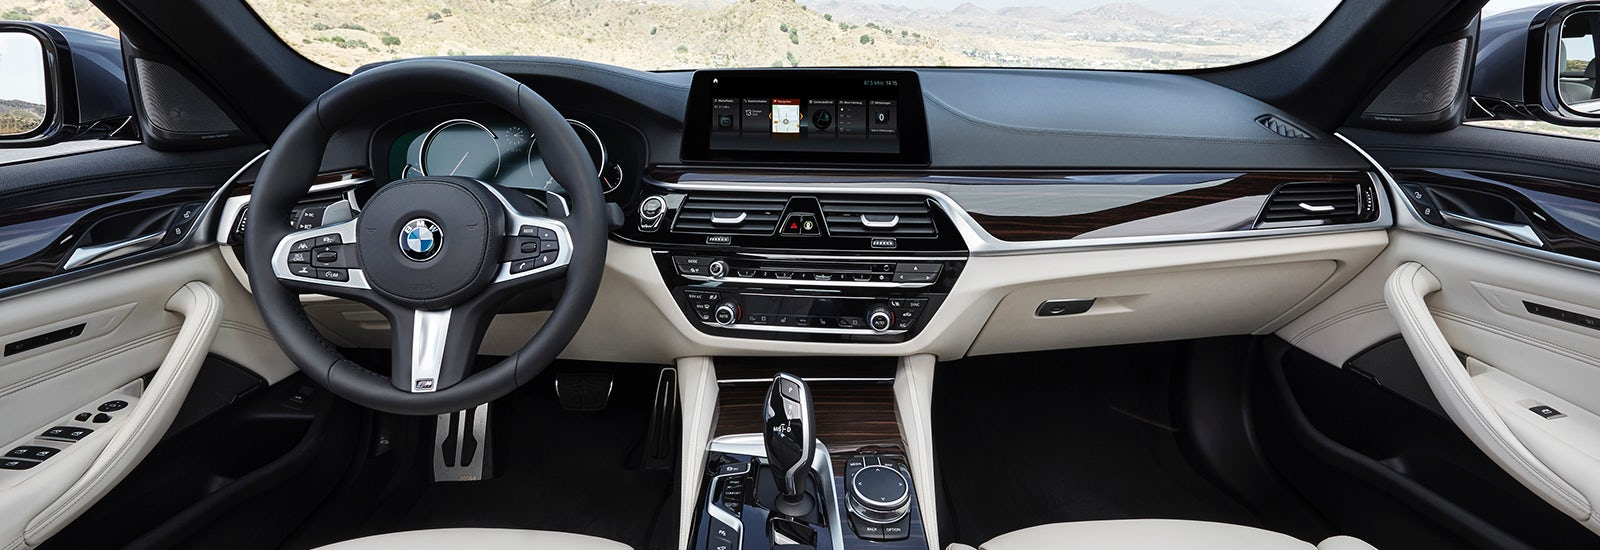 Bmw 5 series and touring size and dimensions guide carwow for Bmw serie 3 2018 interior